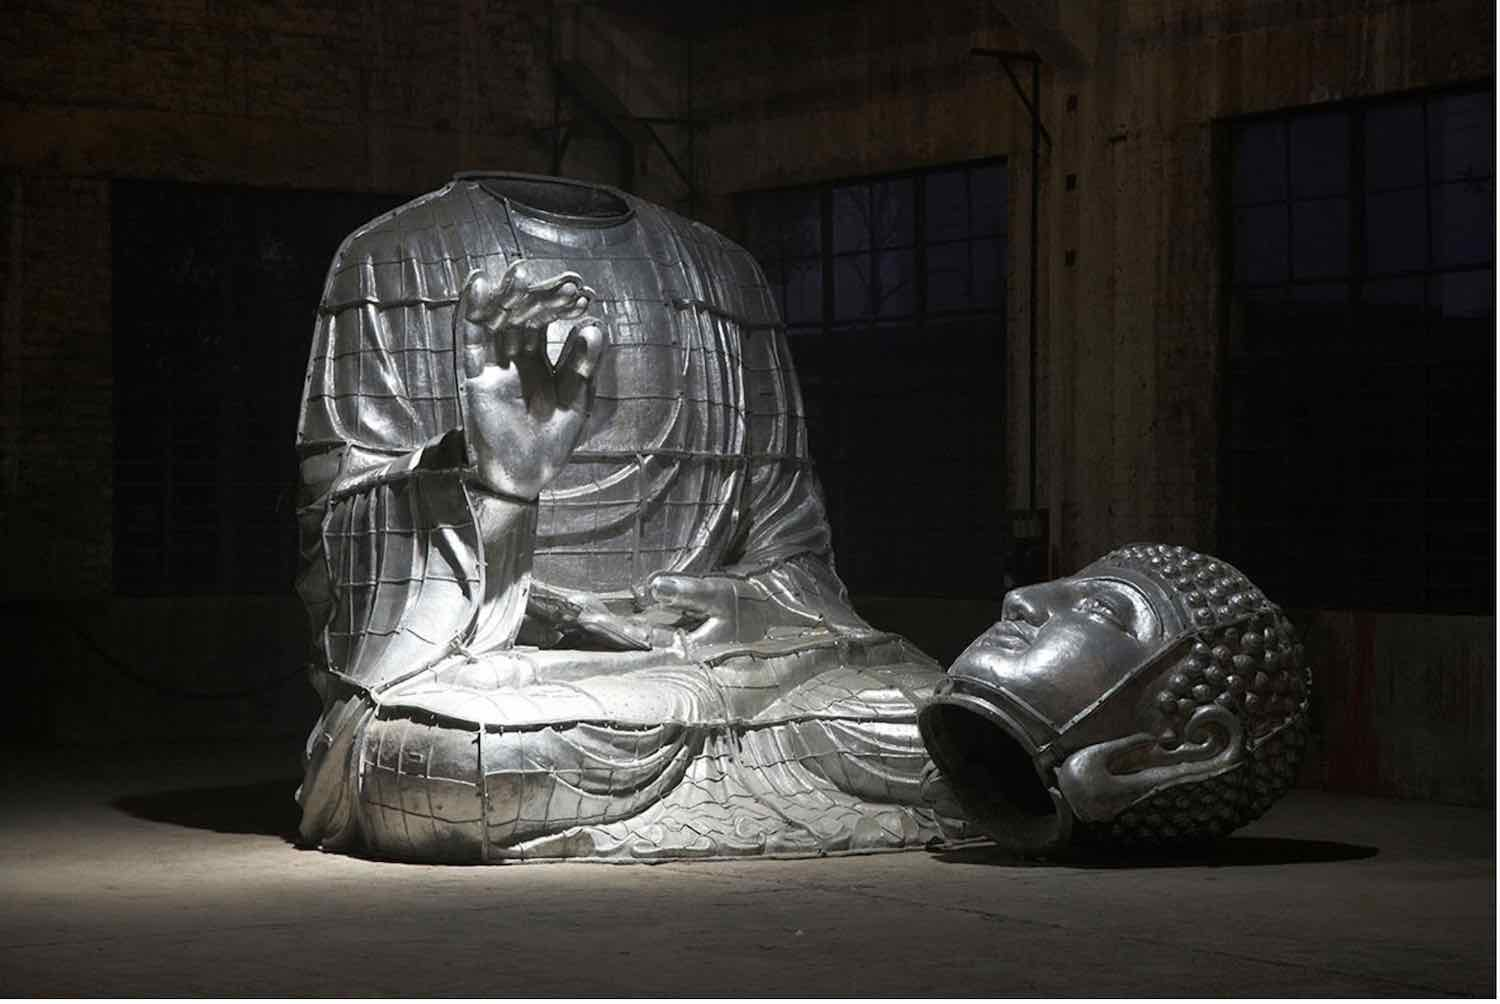 Faena Festival, THE LAST SUPPER. Miami Buddha by Zhang Huan - Photo courtesy of Faena Festival